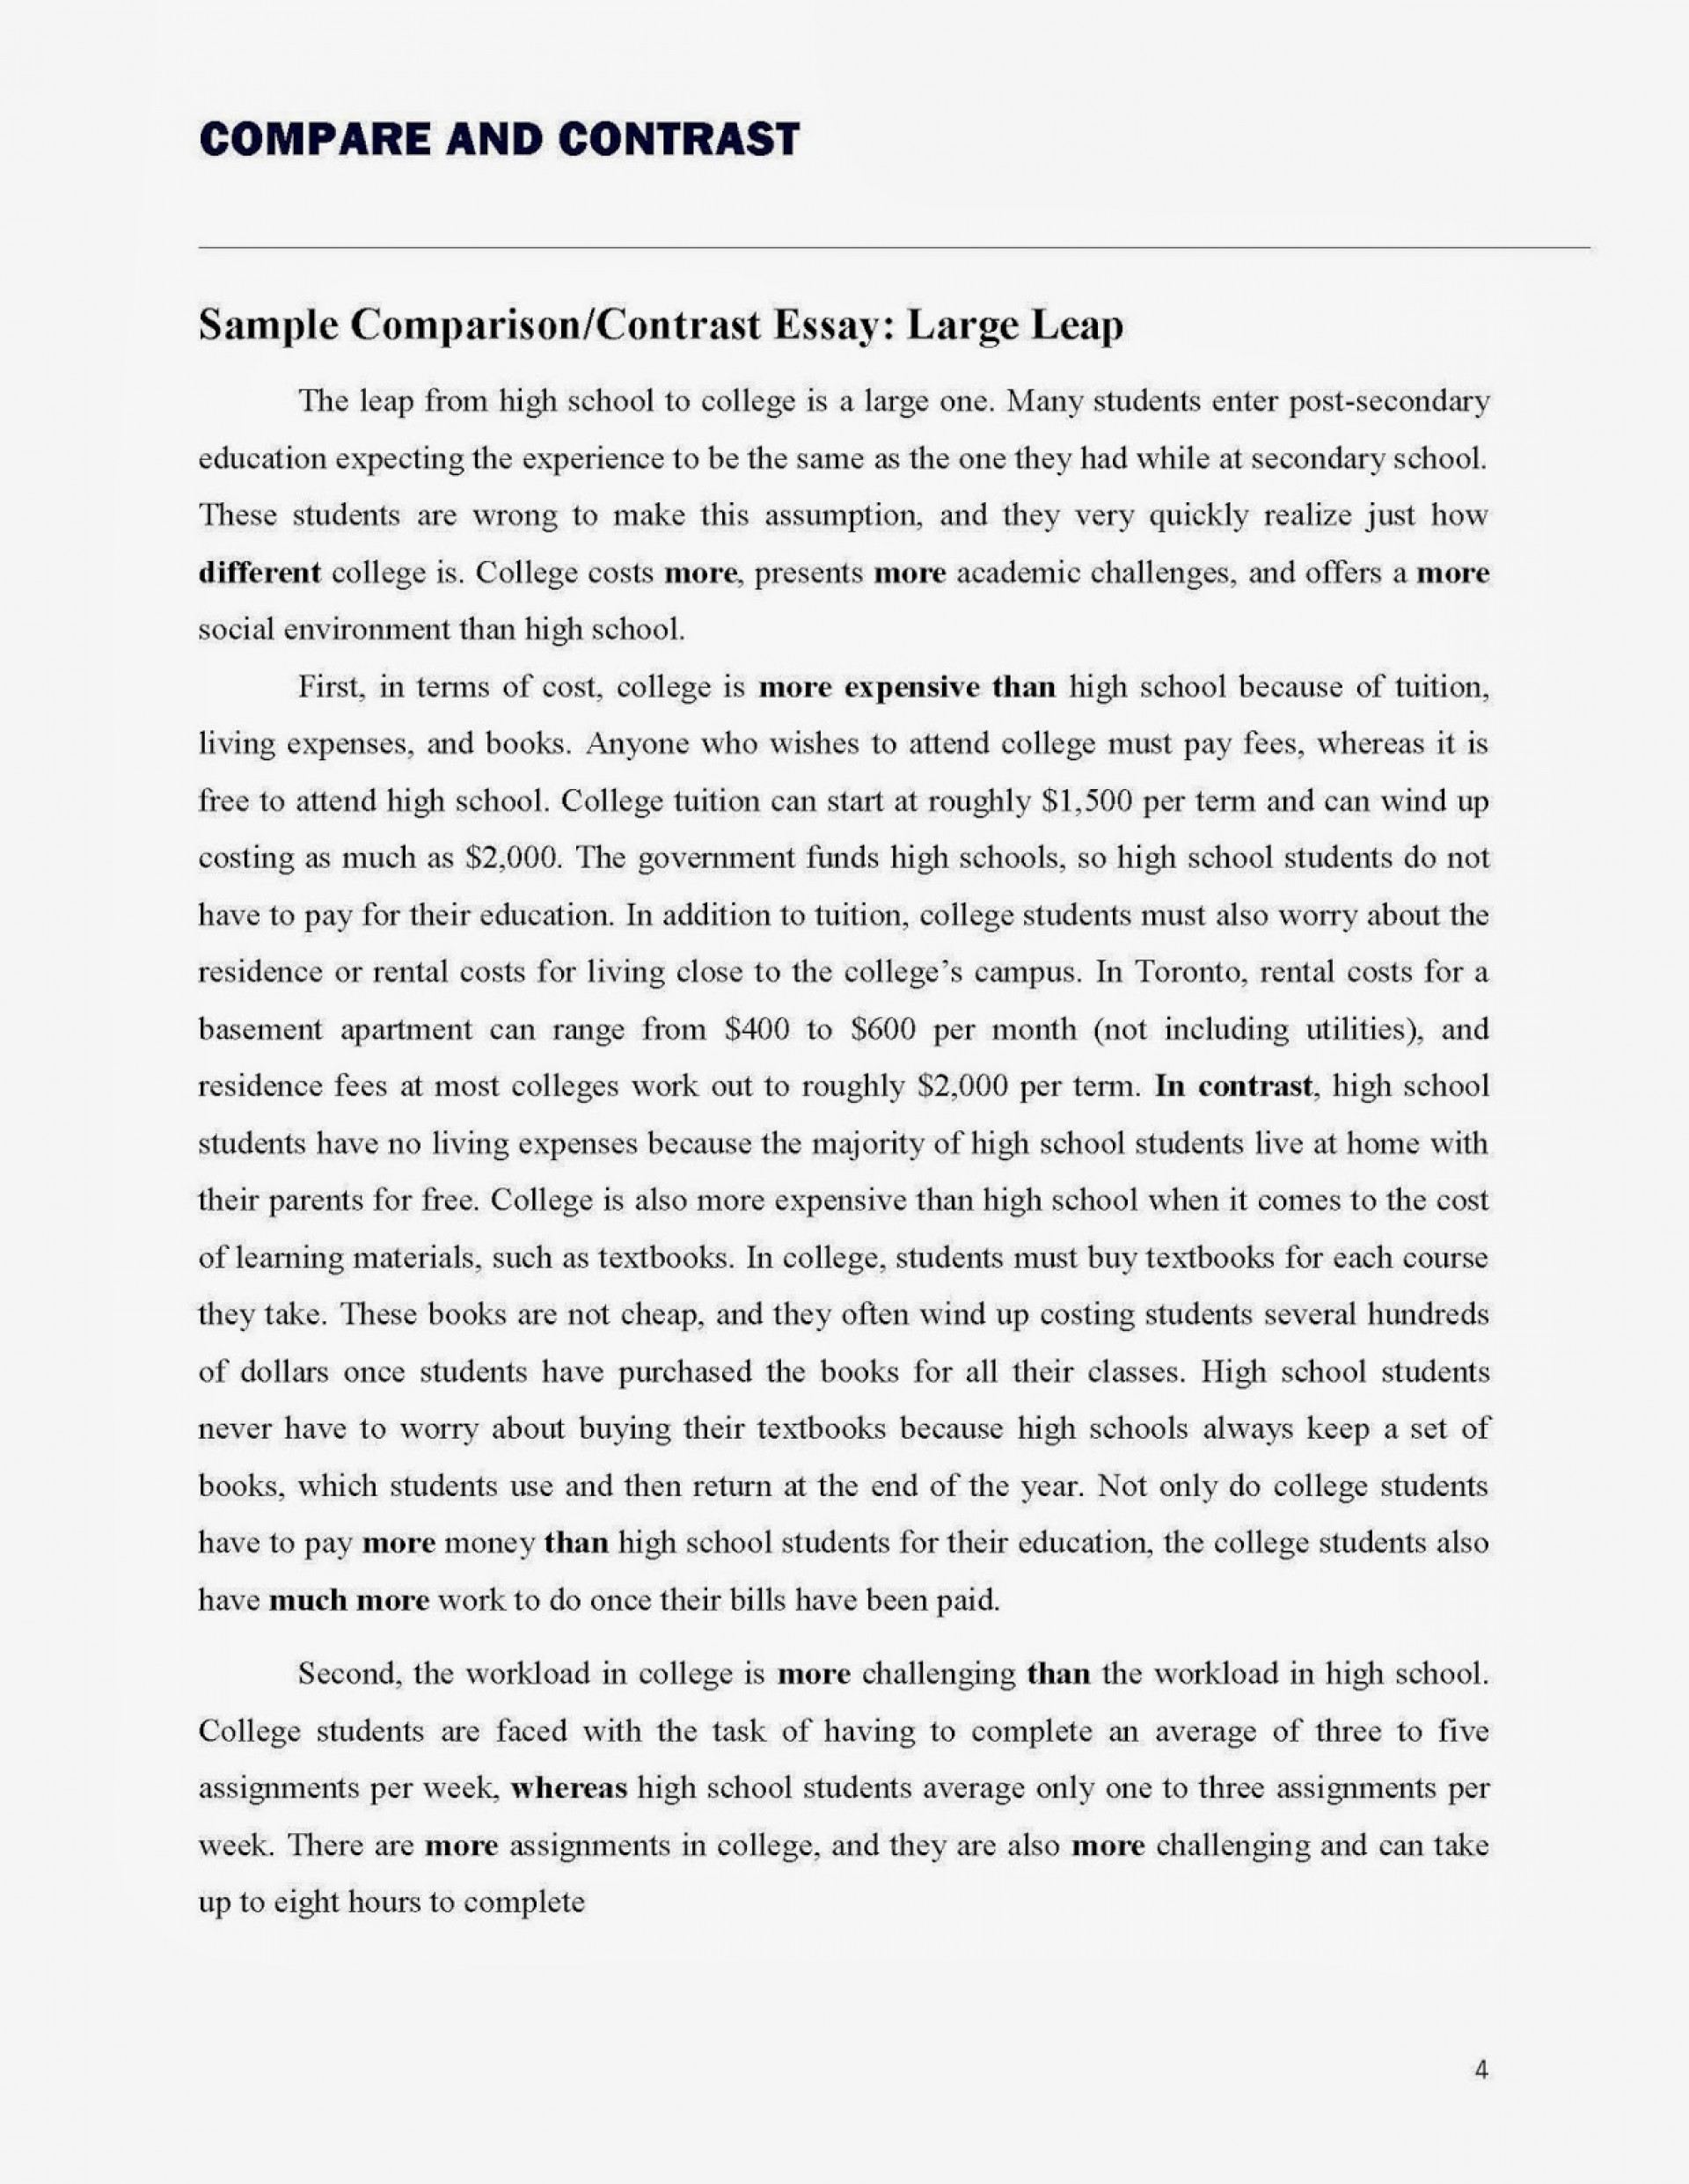 011 Good Compare And Contrast Essay Compare20and20contrast20essay Page 4 Unbelievable Title Generator Examples High School Titles 1920